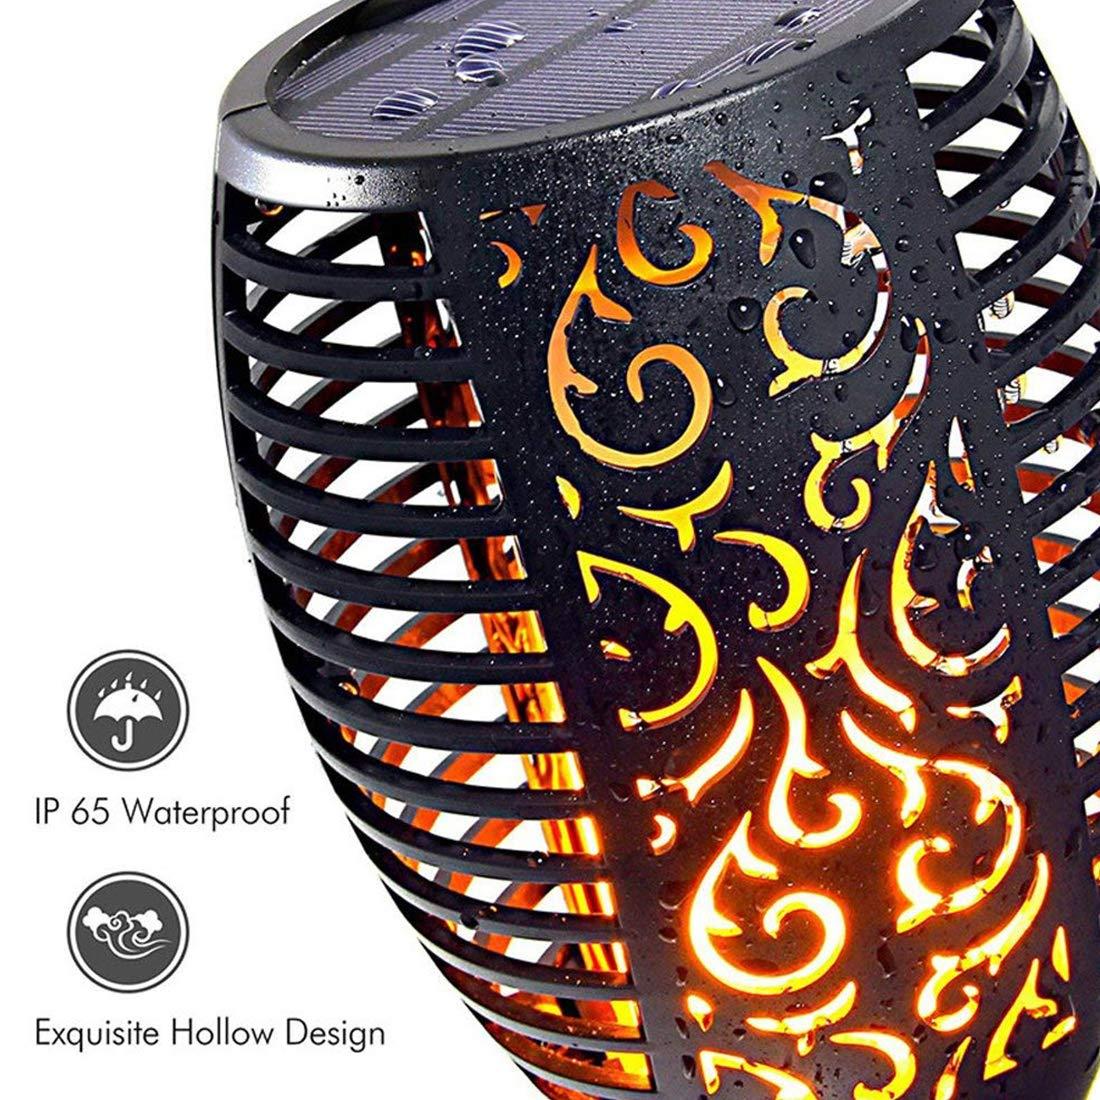 Xtozon Solar Torch Lights Upgraded, Dancing Flames Torch Solar Lamp, 96 LED Flame Effect Saving Lamp, Waterproof Outdoor Pathway Decoration Solar Security Light Auto On/Off from Dusk to Dawn - 4 pack by Xtozon (Image #4)